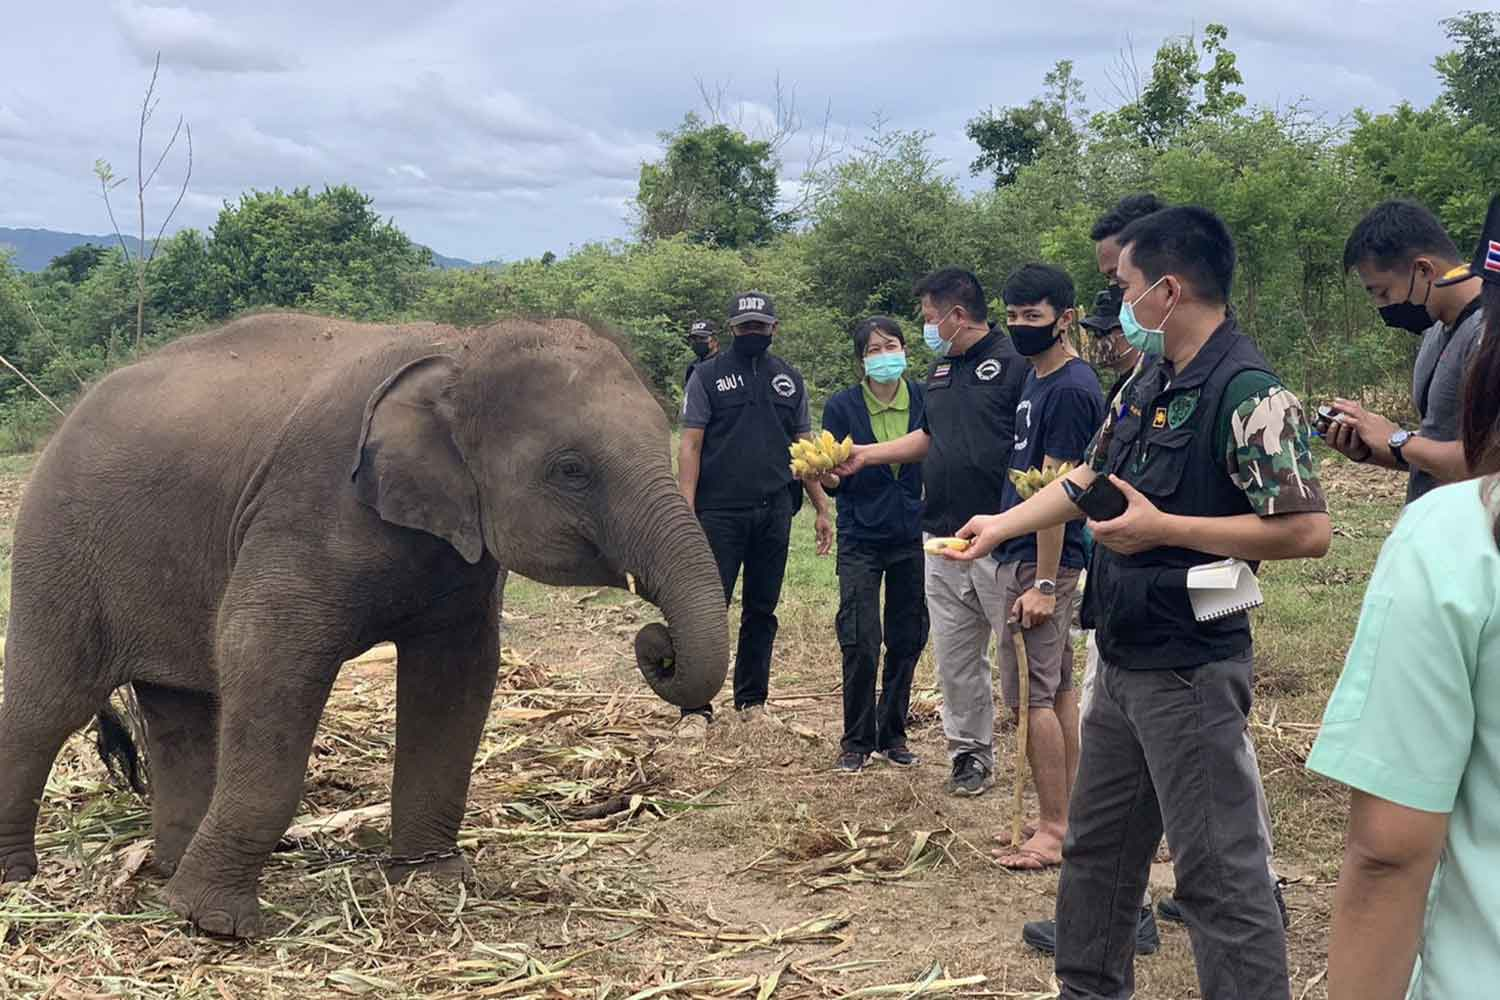 Park officials feed the young elephant as they impound it, at Wang Chan elephant camp in Muang district of Kanchanaburi on Thursday. Officials suspect the animal was caught in the wild and sold to the camp. (Photo: Piyarat Chongcharoen)